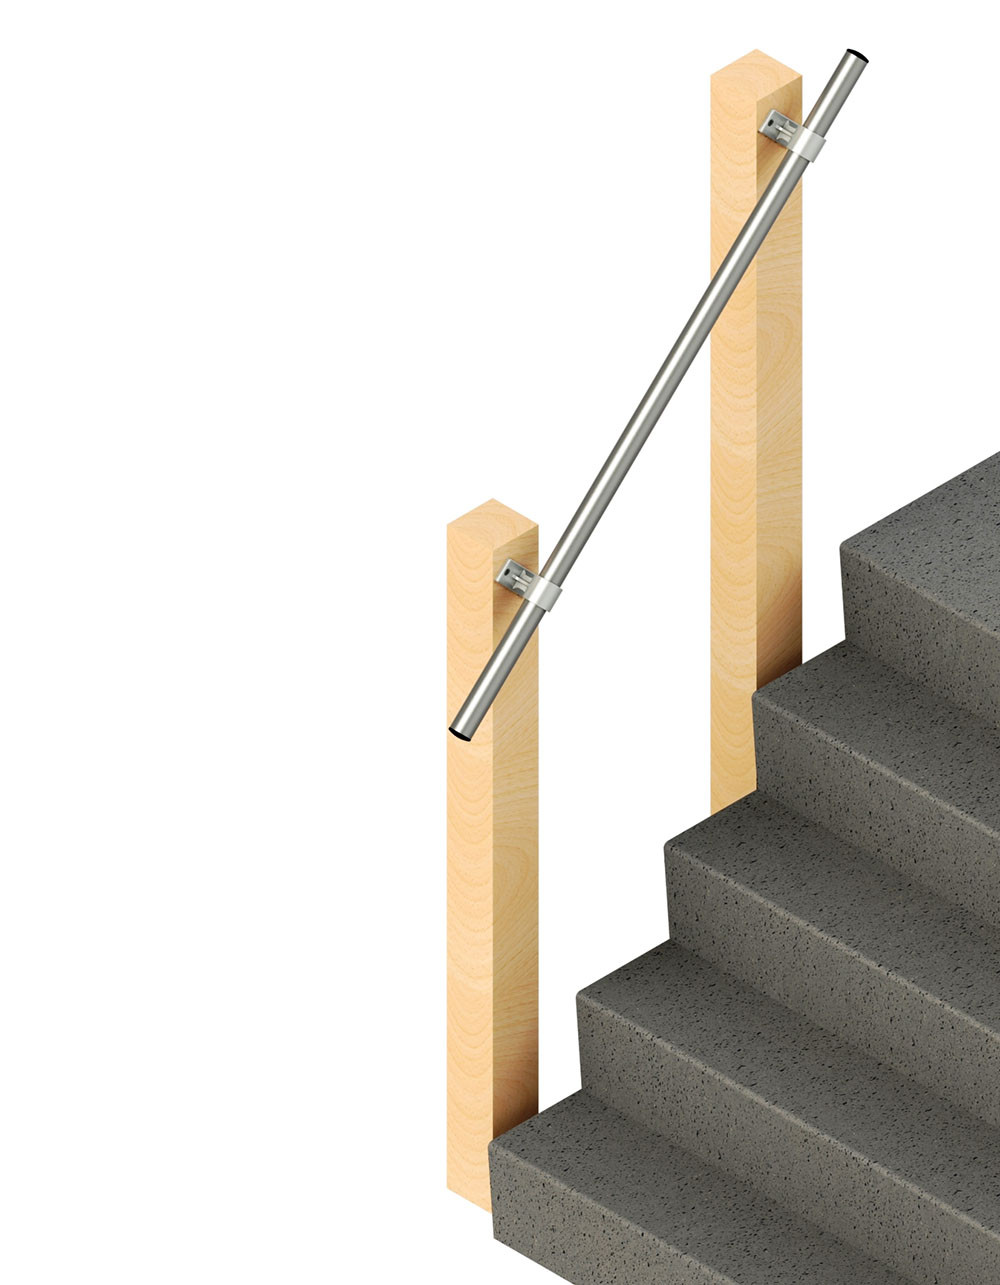 SR 070   Side Fixed Wall Mounted Stair Handrail   Handrail Kits    Accessibility Handrail Kits   Kits   Simplified Building